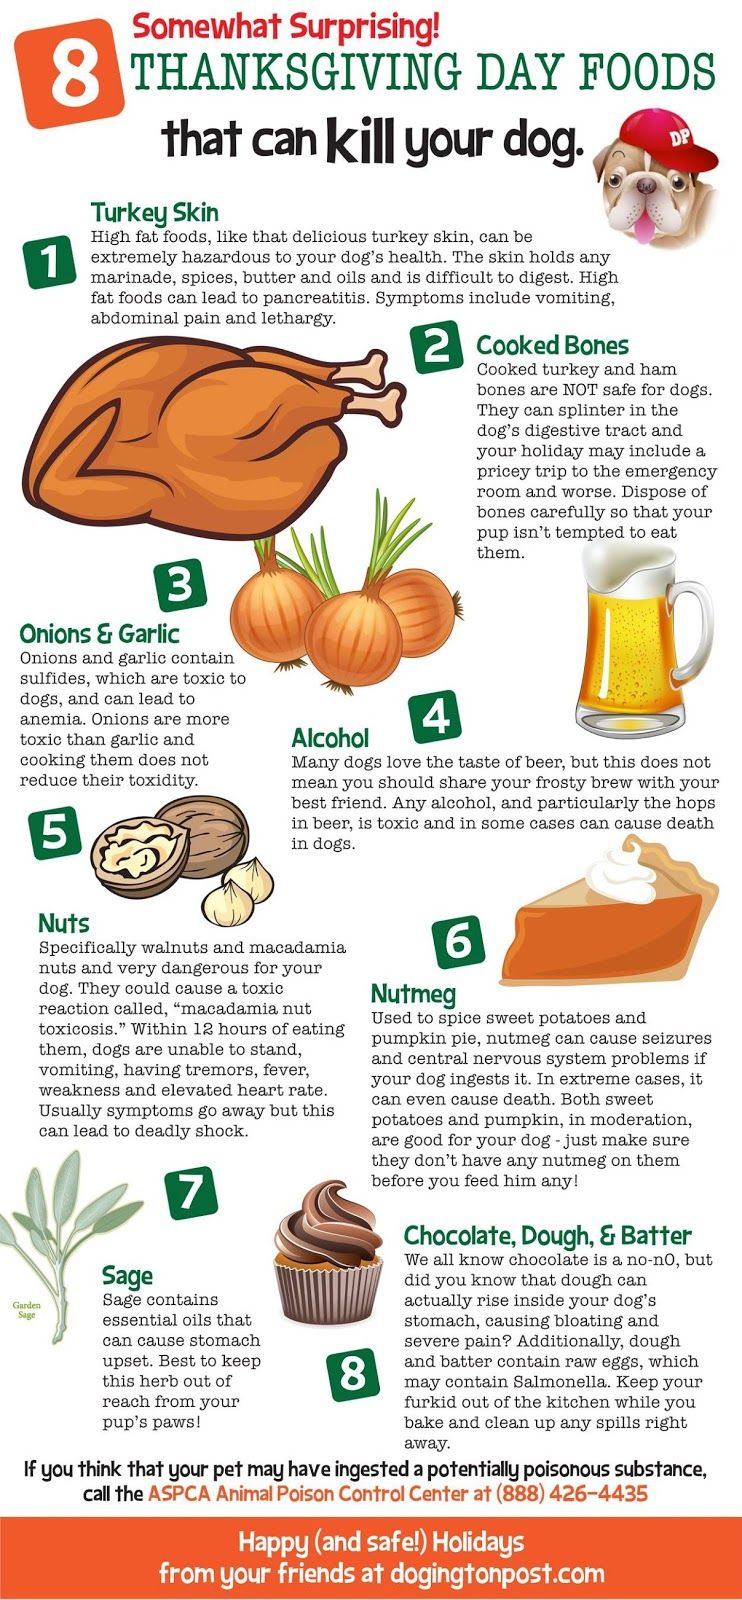 5 tips for a Pet-safe Thanksgiving